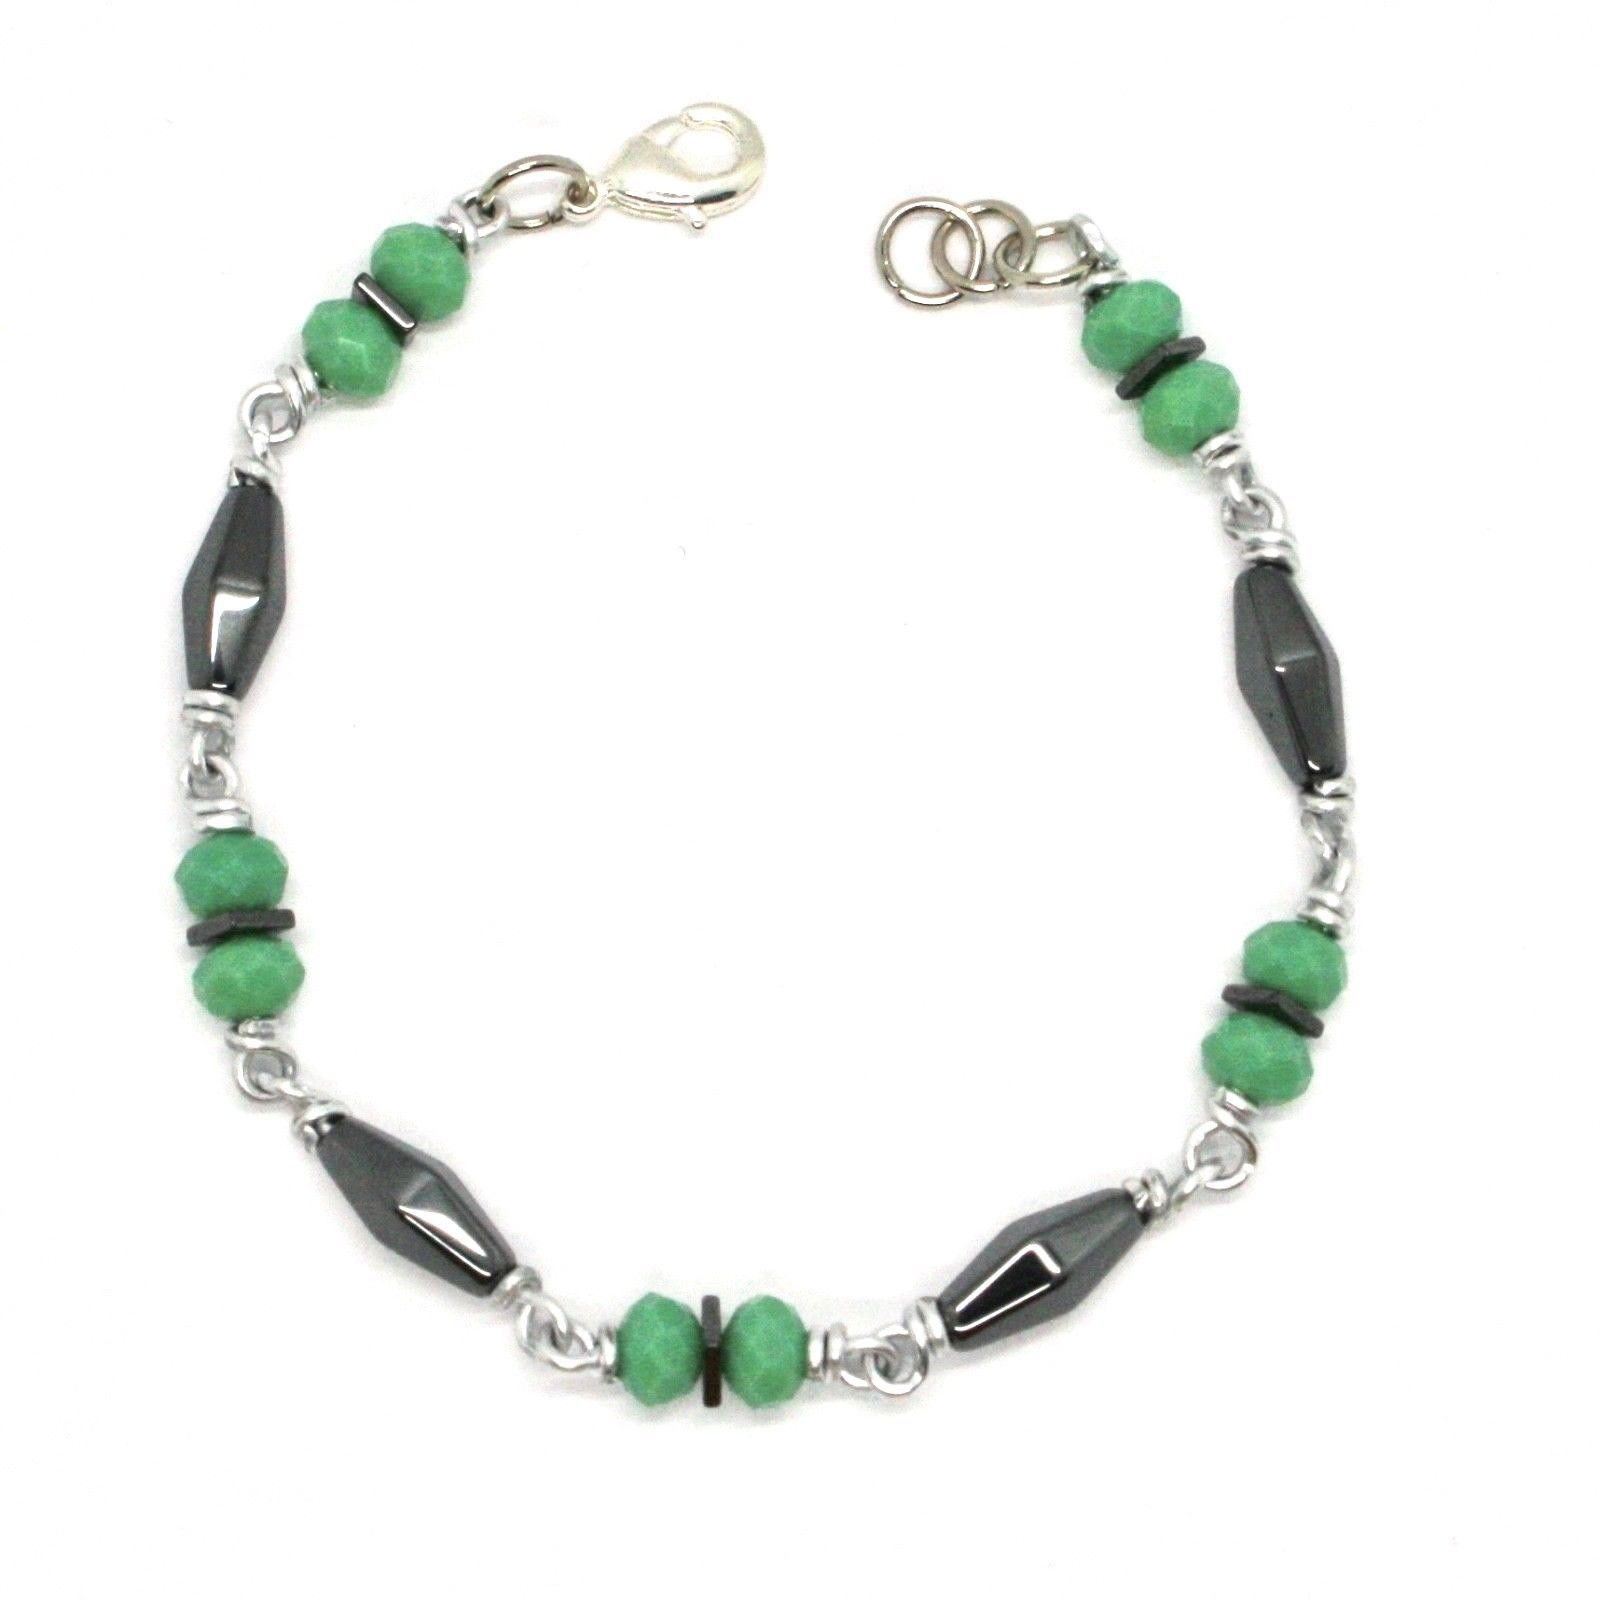 BRACELET THE ALUMINIUM LONG 19 CM WITH HEMATITE AND CRYSTAL GREEN